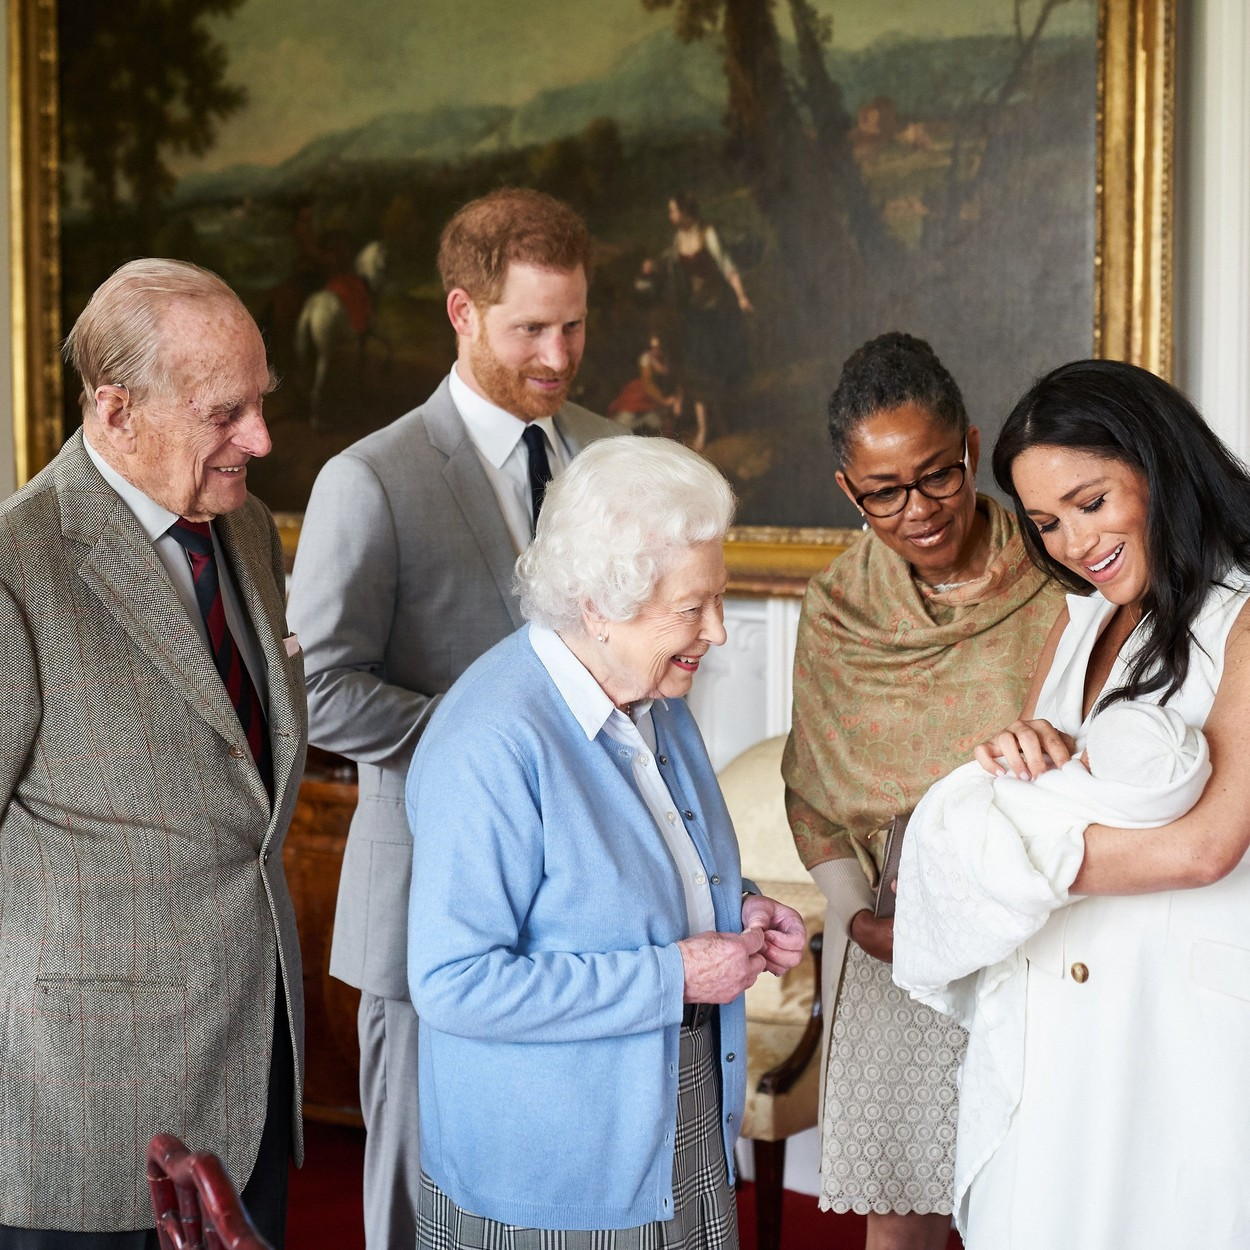 Prince Harry and Meghan Duchess of Sussex are joined by her mother, Doria Ragland, as they show their new son, born Monday and named as Archie Harrison Mountbatten-Windsor, to Queen Elizabeth II and Prince Philip at Windsor Castle. Queen Elizabeth II meets new grandson Archie Harrison Mountbatten-Windsor, Windsor Castle, UK - 08 May 2019 This photograph is provided to you strictly on condition that you will make no charge for the supply, release or publication of it and that these conditions and restrictions will apply (and that you will pass these on) to any organisation to whom you supply it. There shall be no commercial use whatsoever of the photographs (including by way of example only) any use in merchandising, advertising or any other non-news editorial use. The photograph must not be digitally enhanced, manipulated or modified in any manner or form and must include all of the individuals in the photograph when published. All other requests for use should be directed to the Buckingham Palace Press Office in writing. The Duke and Duchess of Sussex are joined by her mother, Doria Ragland, as they show their new son, born Monday and named as Archie Harrison Mountbatten-Windsor, to the Queen Elizabeth II and the Duke of Edinburgh at Windsor Castle., Image: 431837840, License: Rights-managed, Restrictions: NOT FOR USE AFTER 7th JUNE 2019. Free for use, News Editorial Use Only. No Commercial Use. No Merchandising, Advertising, Souvenirs, Memorabilia Or Colourably Similar., Model Release: no, Credit line: Profimedia, Shutterstock Editorial